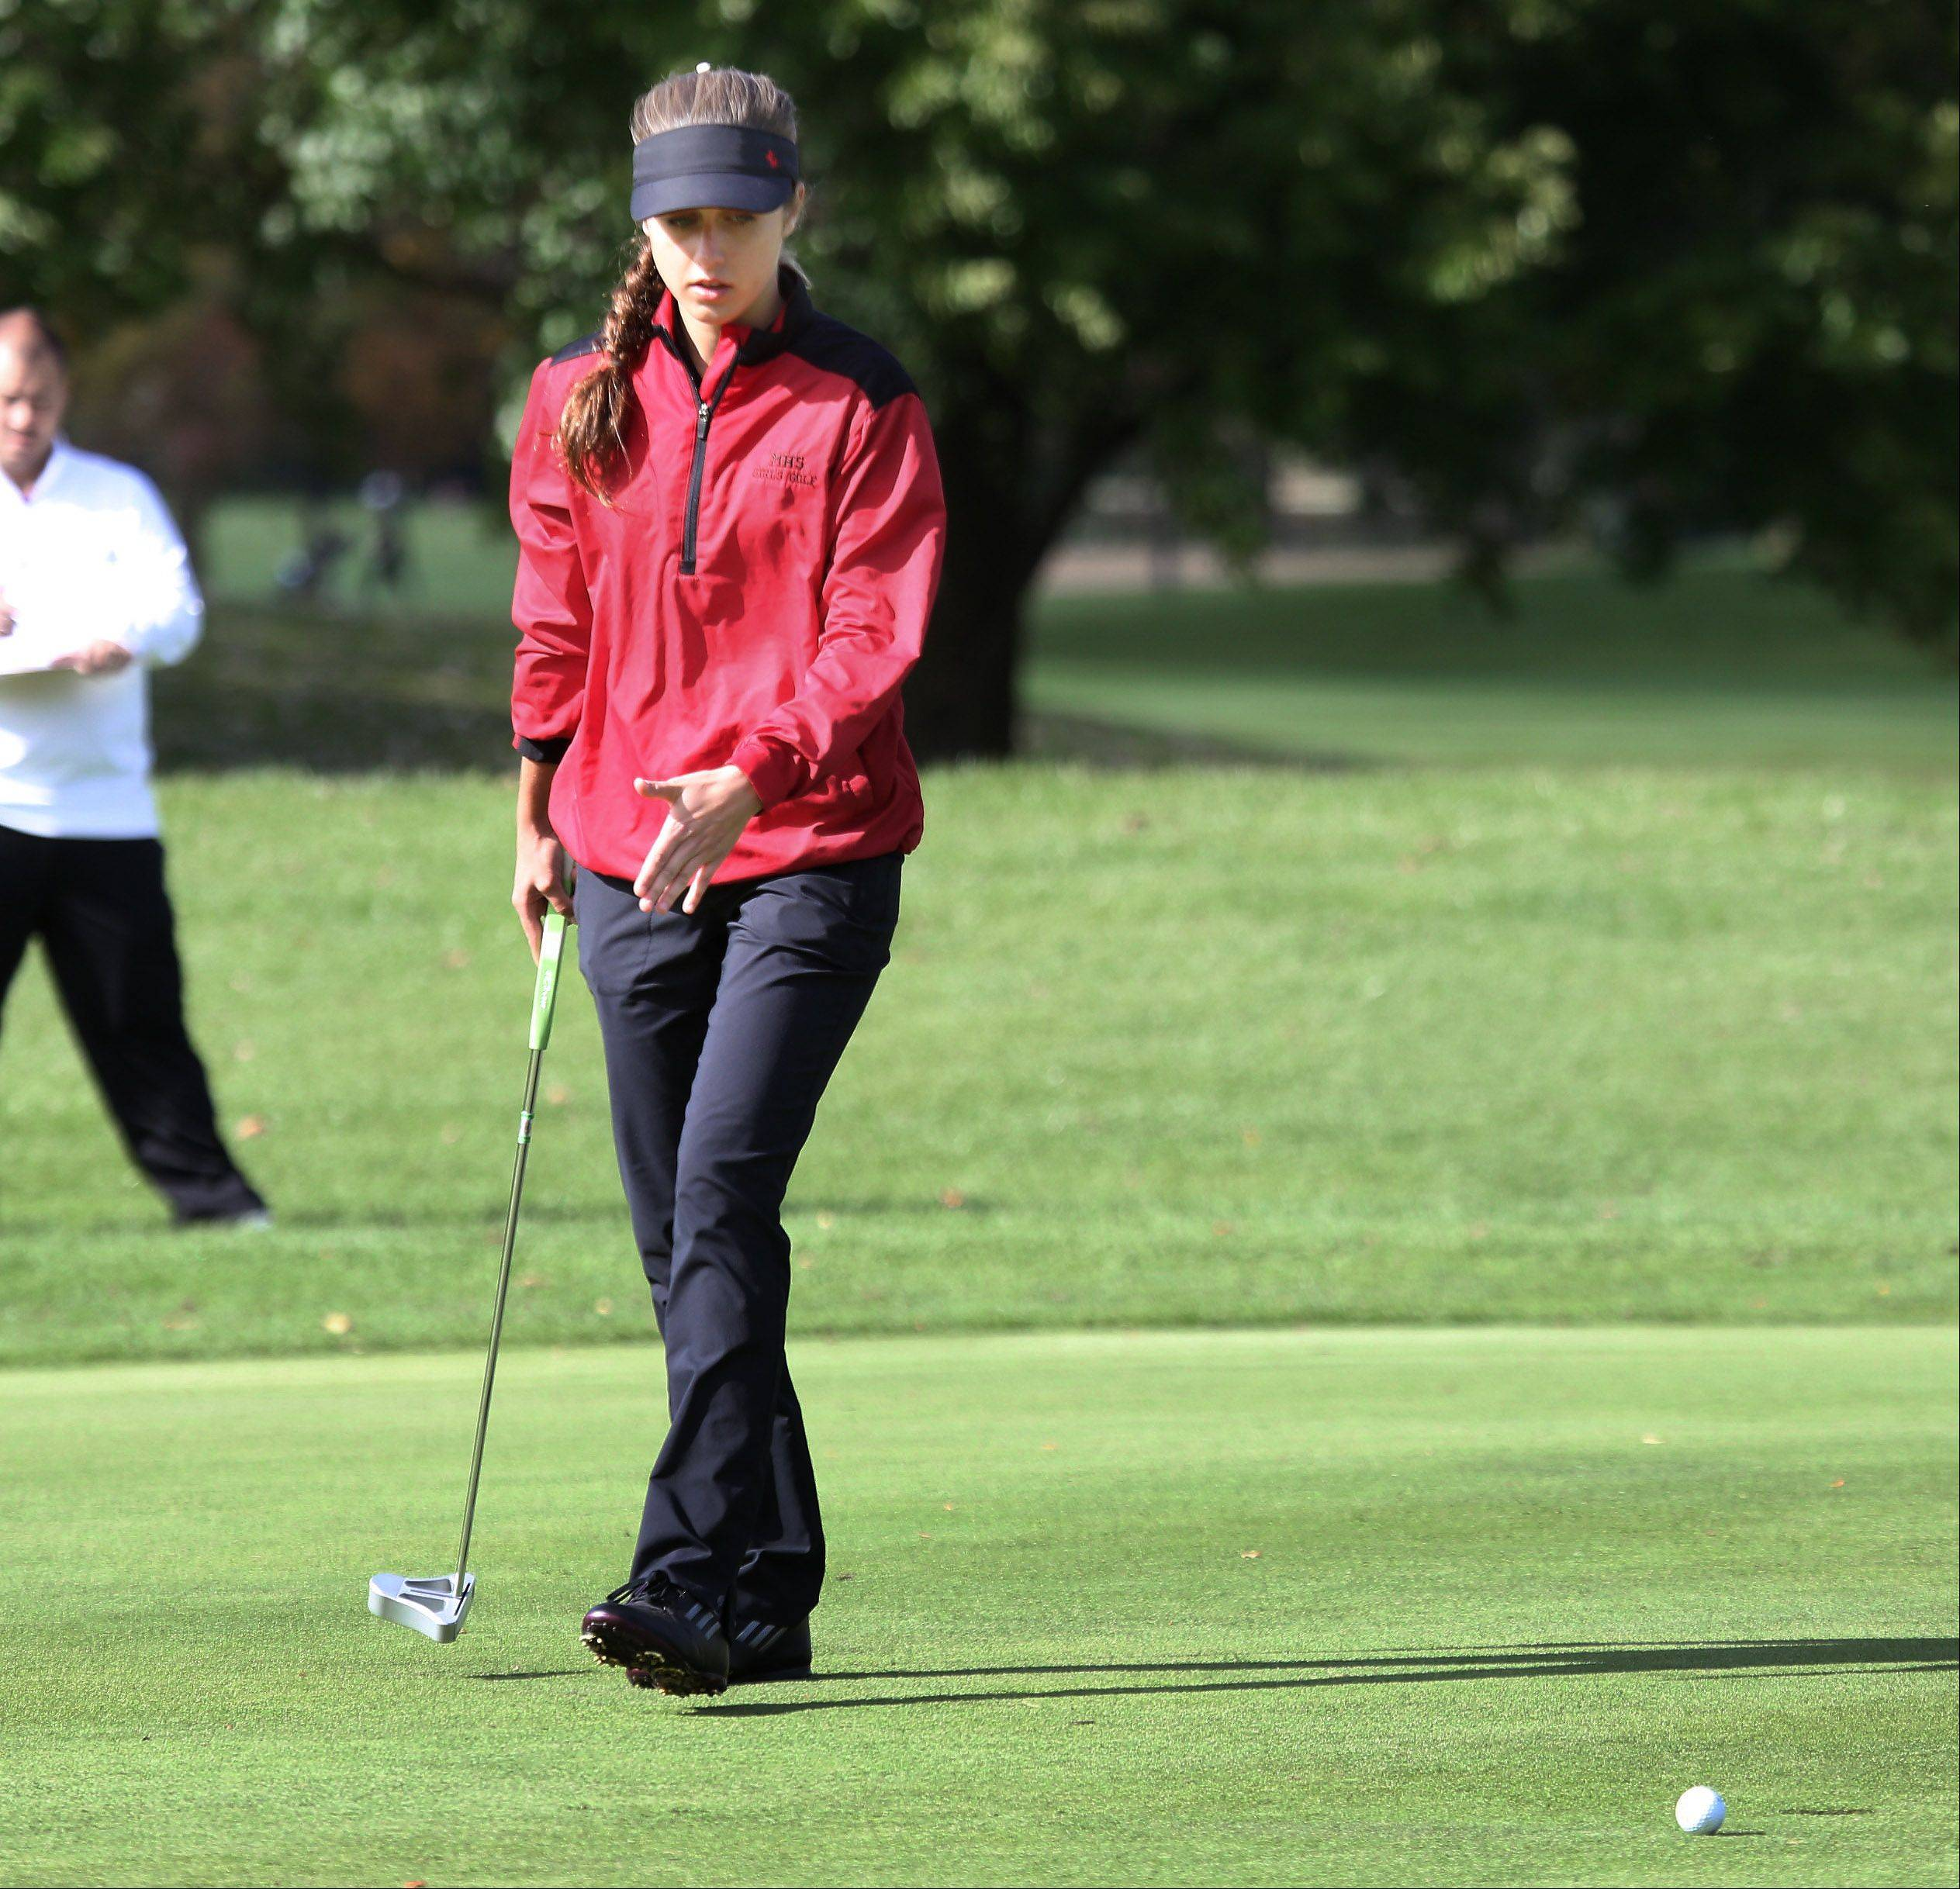 Mundelein golfer Courteney Fabbri talks to herself after missing the putt on the third hole during the Buffalo Grove sectional on Monday.